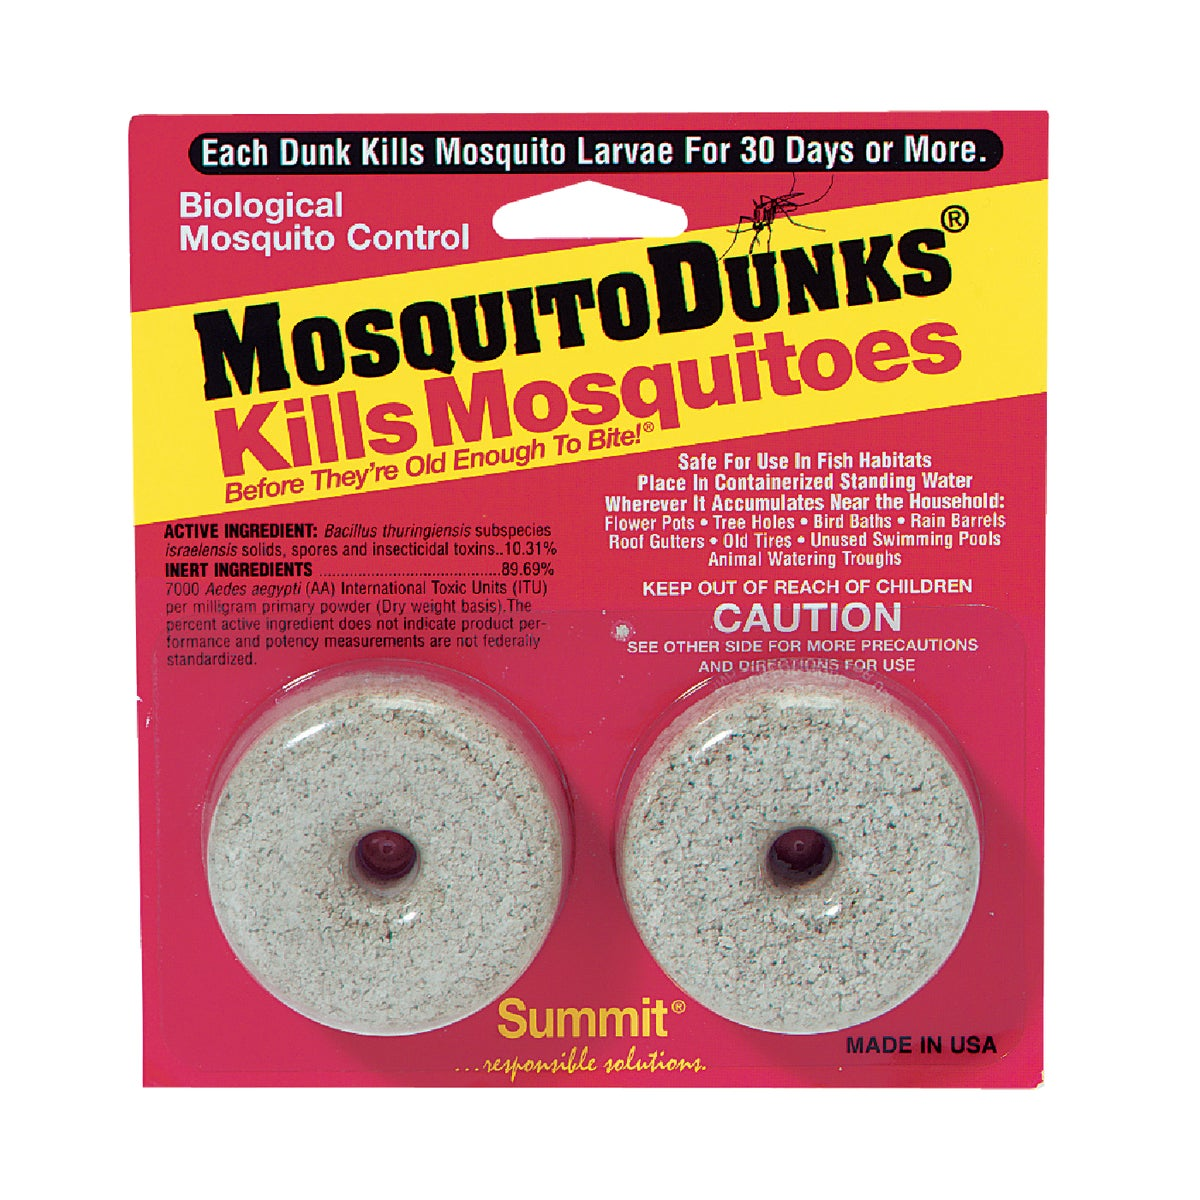 2PK MOSQUITO DUNKS - 102-12 by Summit Chemical Co